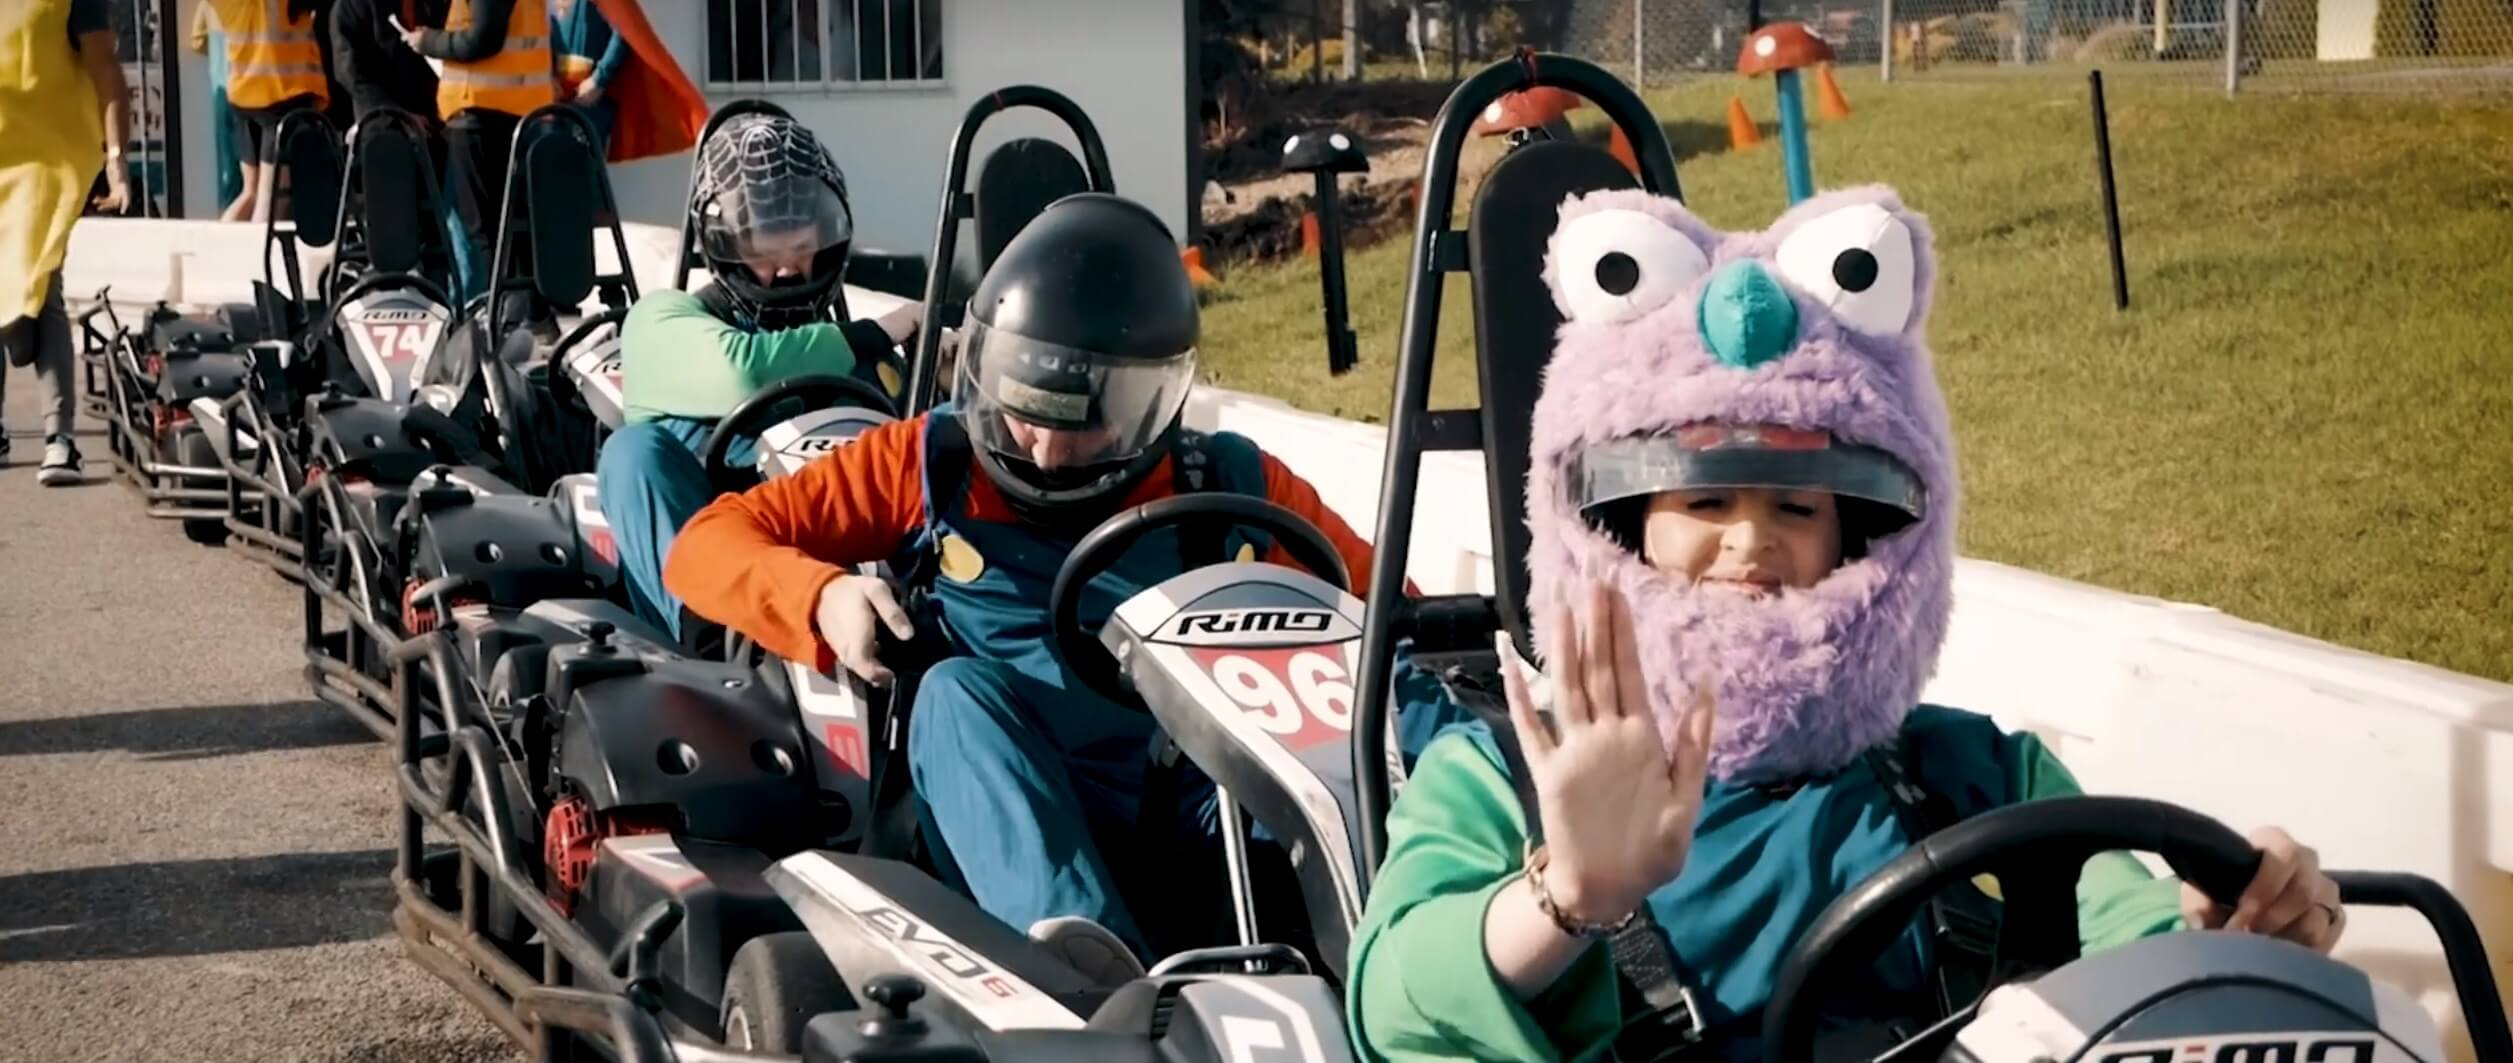 Tickets for real-world Mario Kart races now on sale